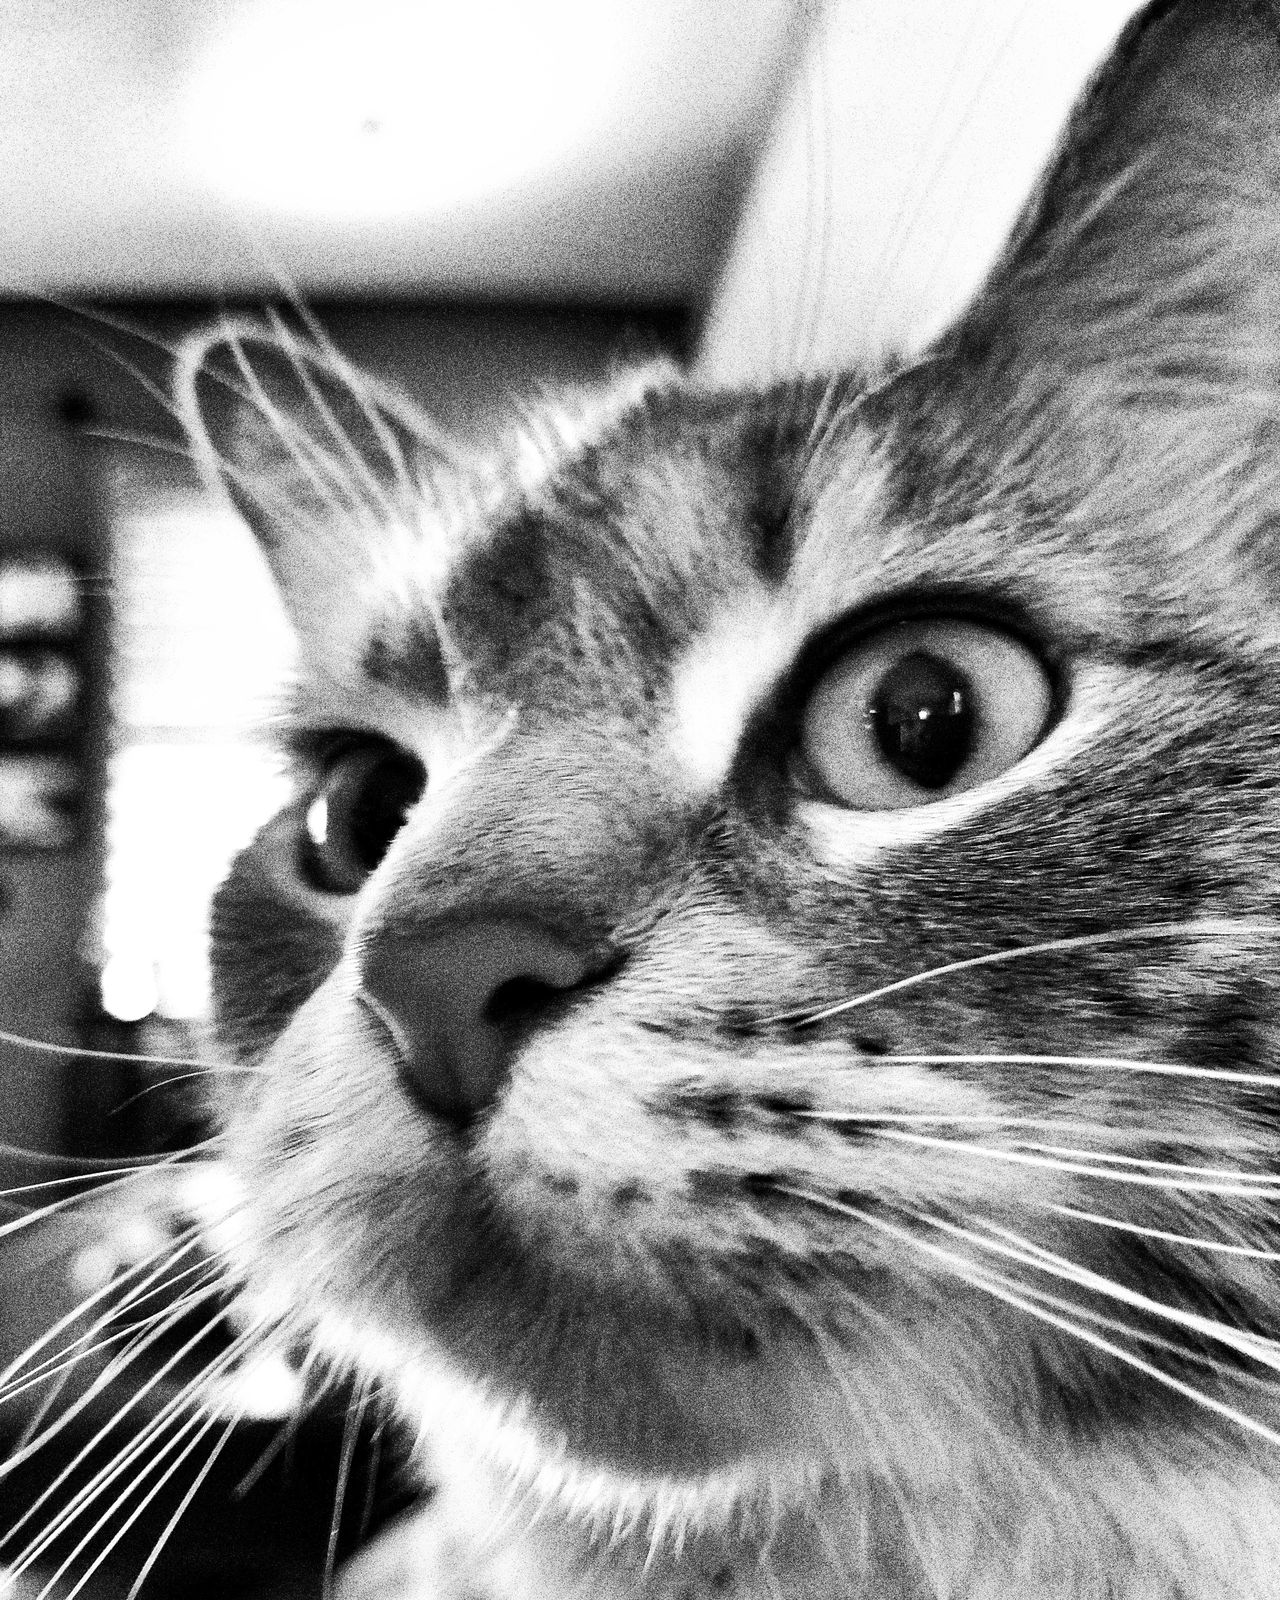 Cat Animal Themes One Animal Mammal Pets Close-up Looking At Camera Domestic Cat Domestic Animals Portrait No People Indoors  Feline Animal Eye Day Blackandwhite Black And White Bw Bw_collection